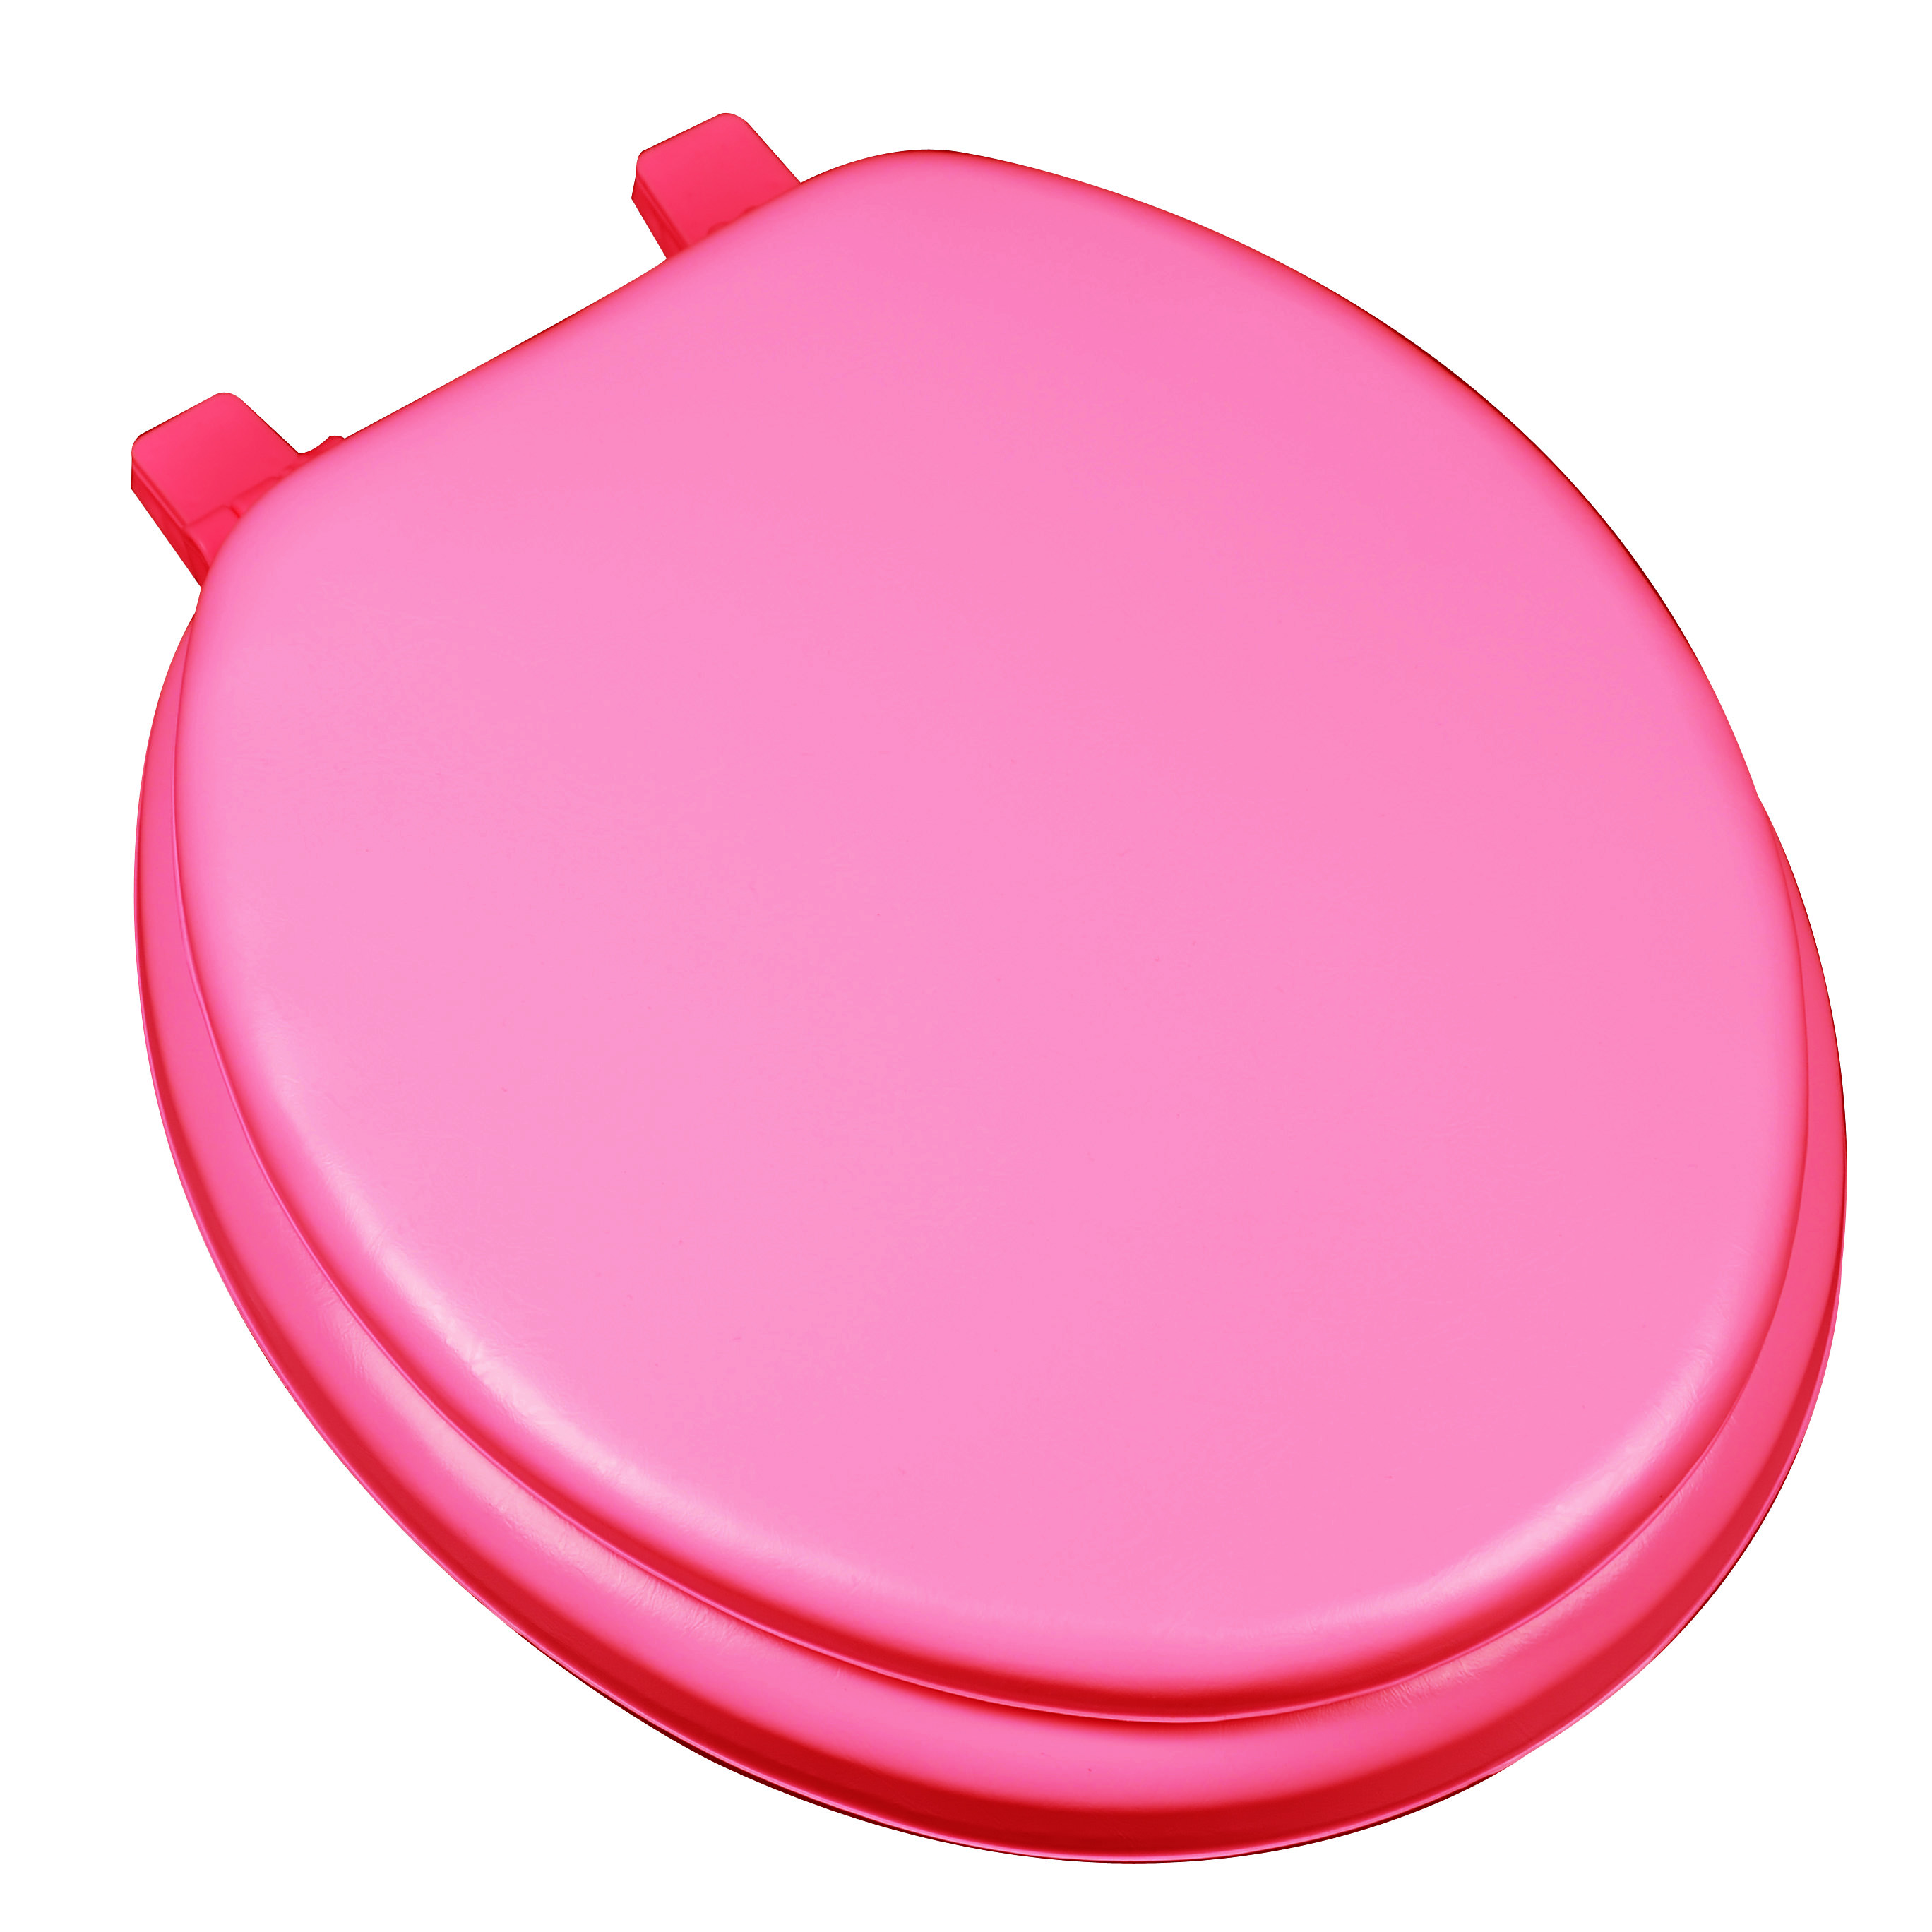 BathDecor Deluxe Soft Round Toilet Seat with a Closed Front in Red.